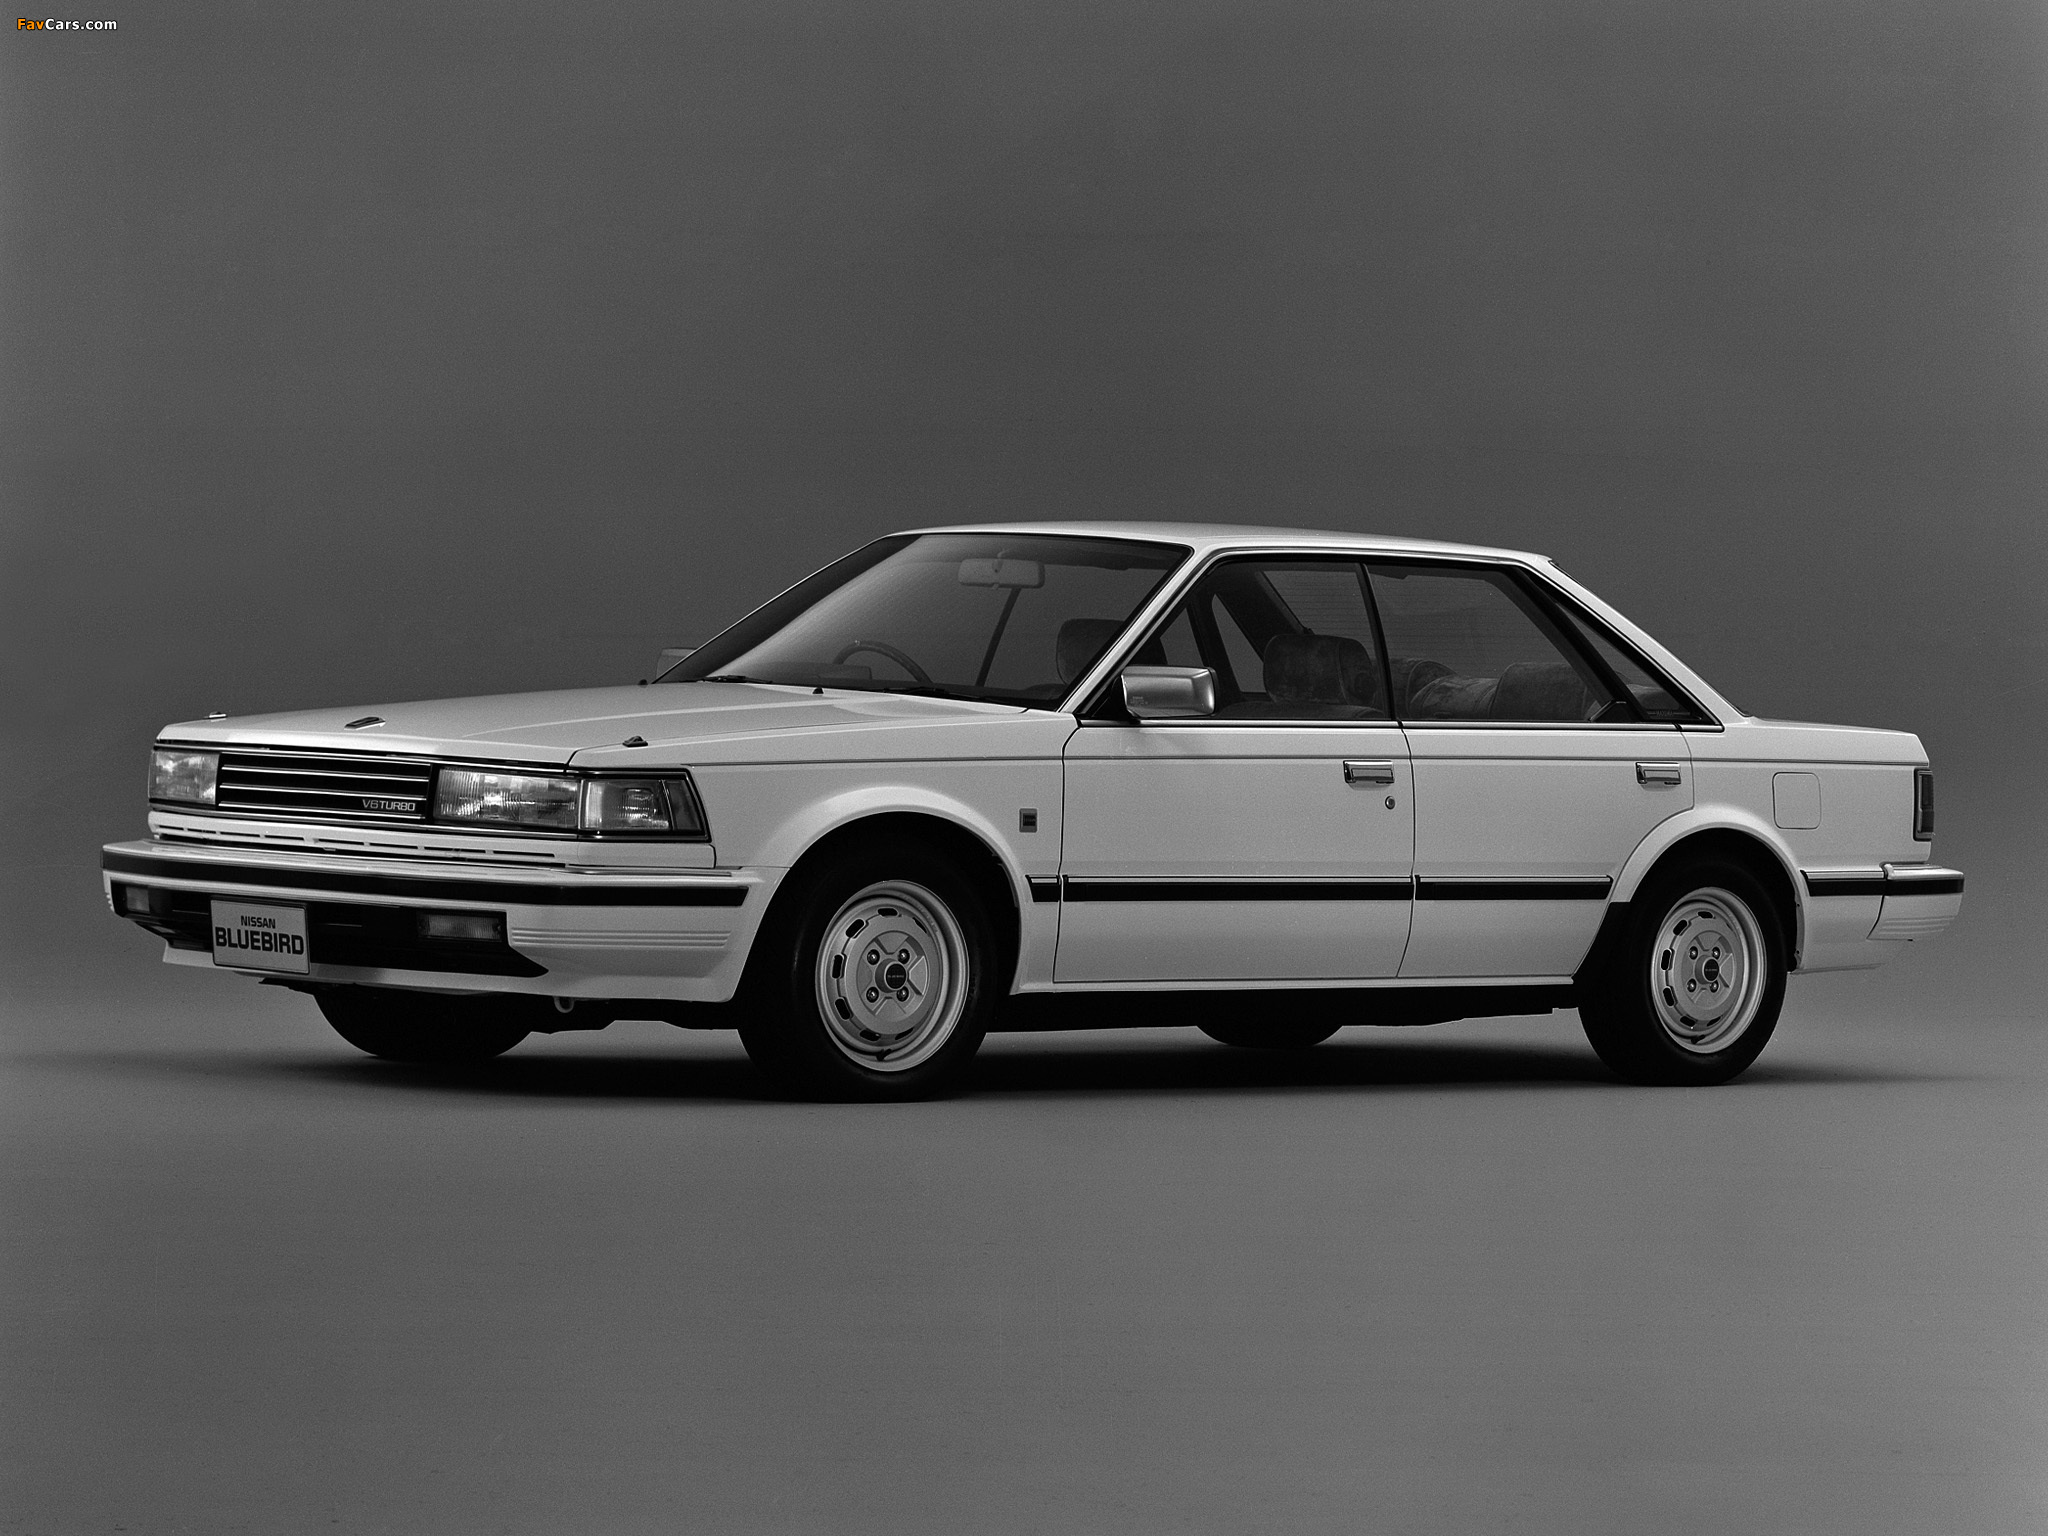 Default furthermore Ste unk 6 Wheel Land Yacht Is A Car From The Future Past Photo Gallery 89635 in addition Nissan Bluebird Maxima Hardtop U11 1984 86 Images 5511 furthermore 29343 together with Gac Trumpchi Gs8 Suv Takes The Number Too Seriously 106891. on nissan maxima car